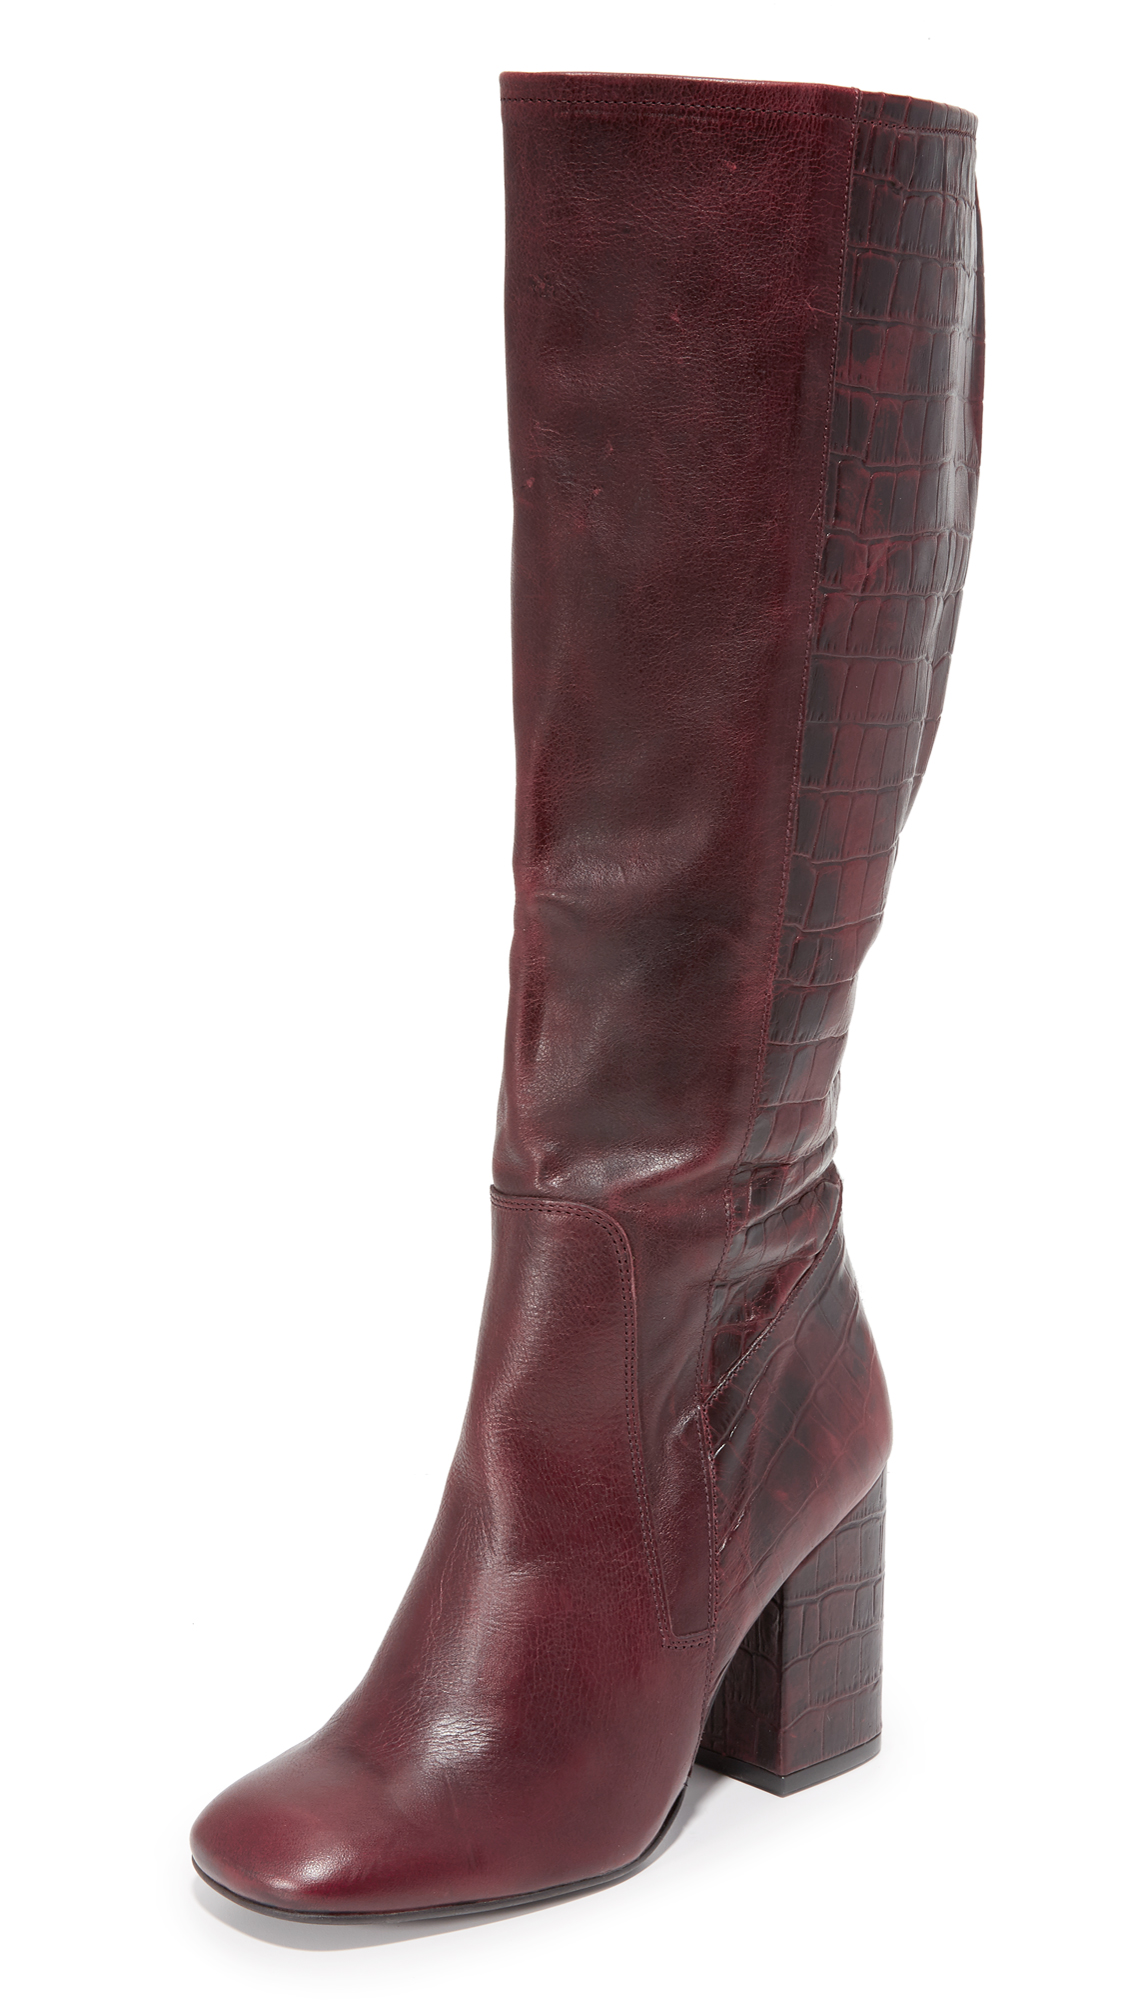 Free People High Ground Tall Boots - Red at Shopbop